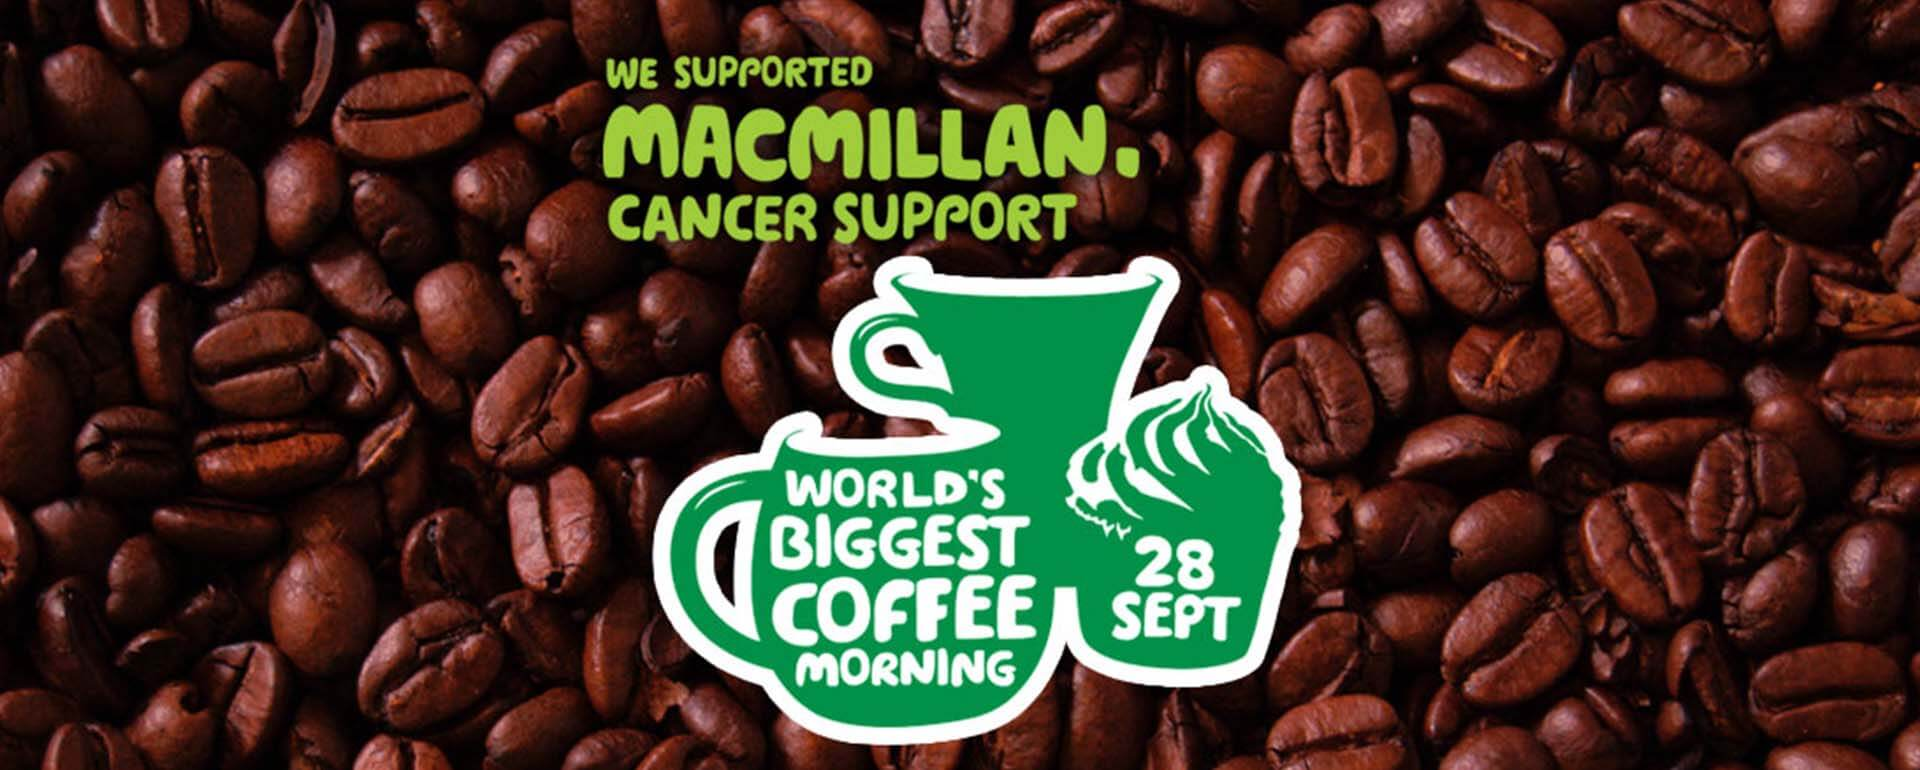 MacMillan Coffee Morning 2012